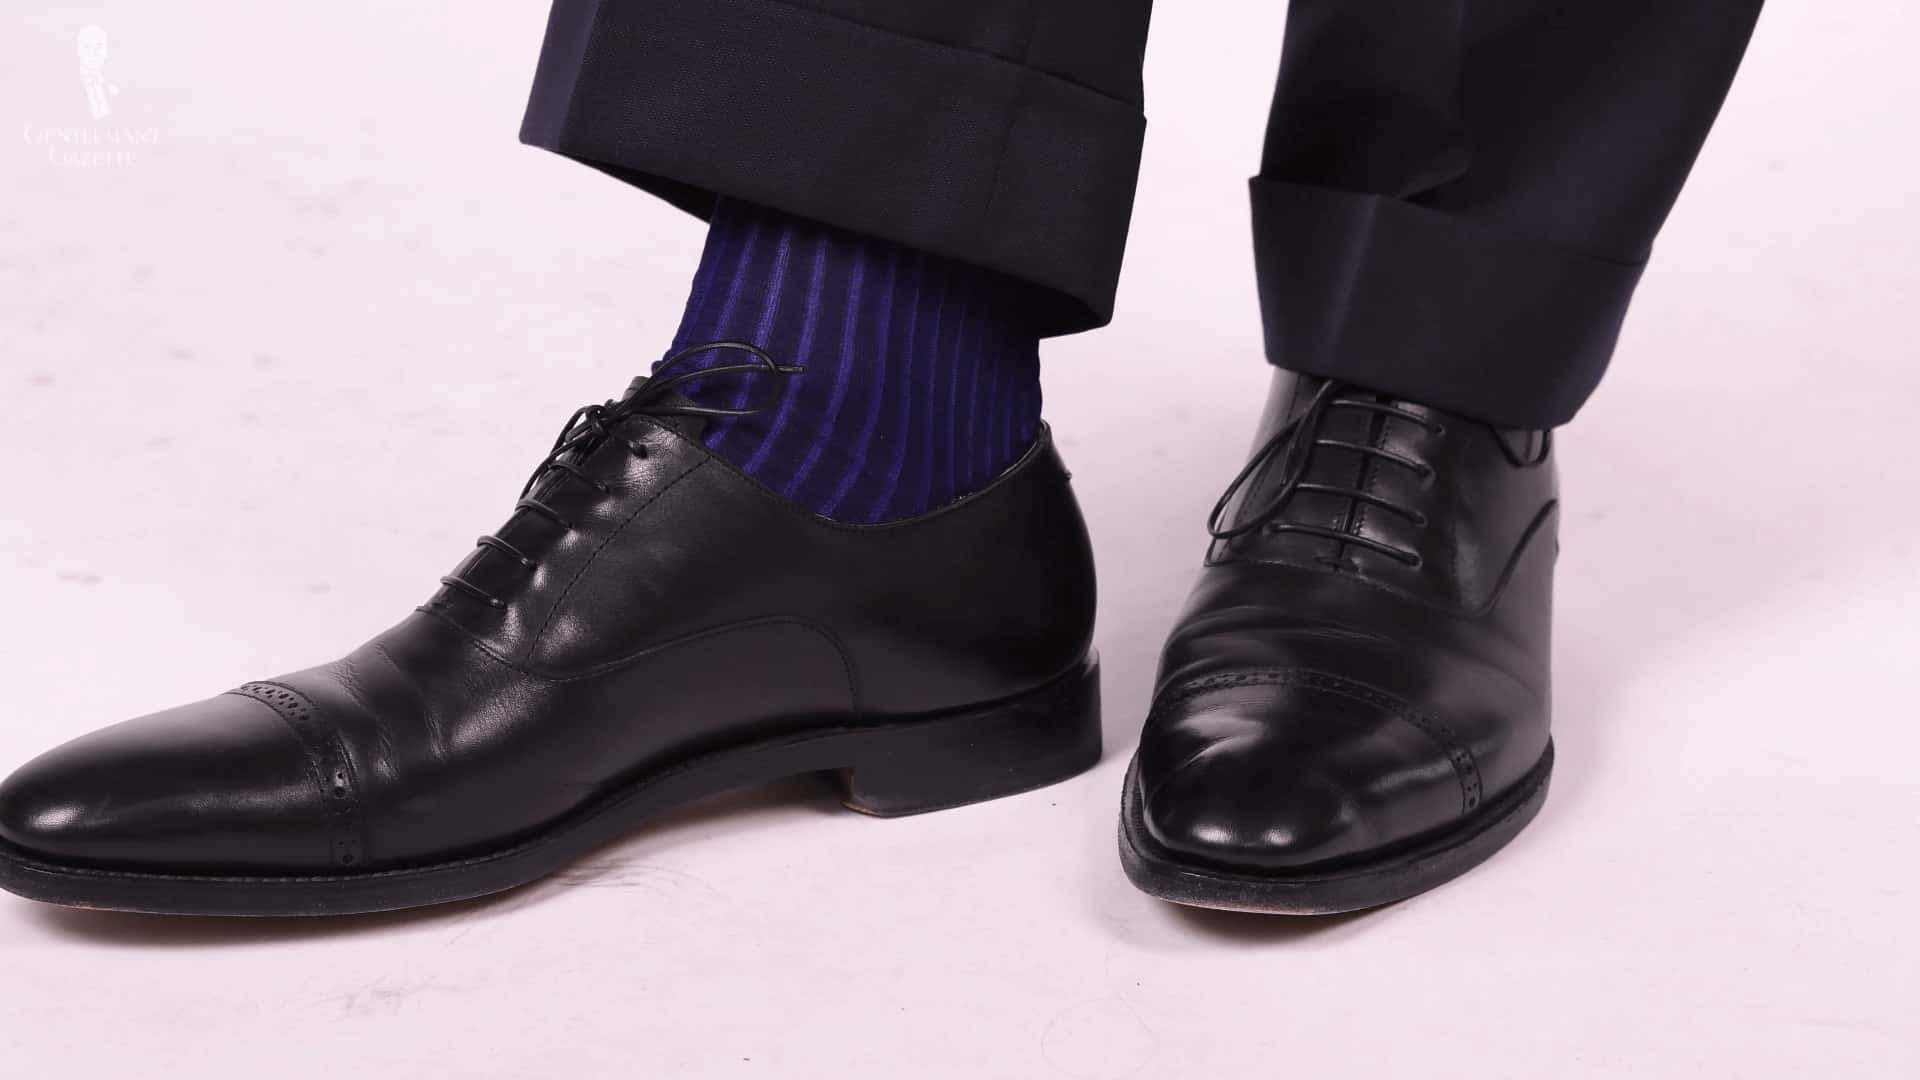 dress boots for suits